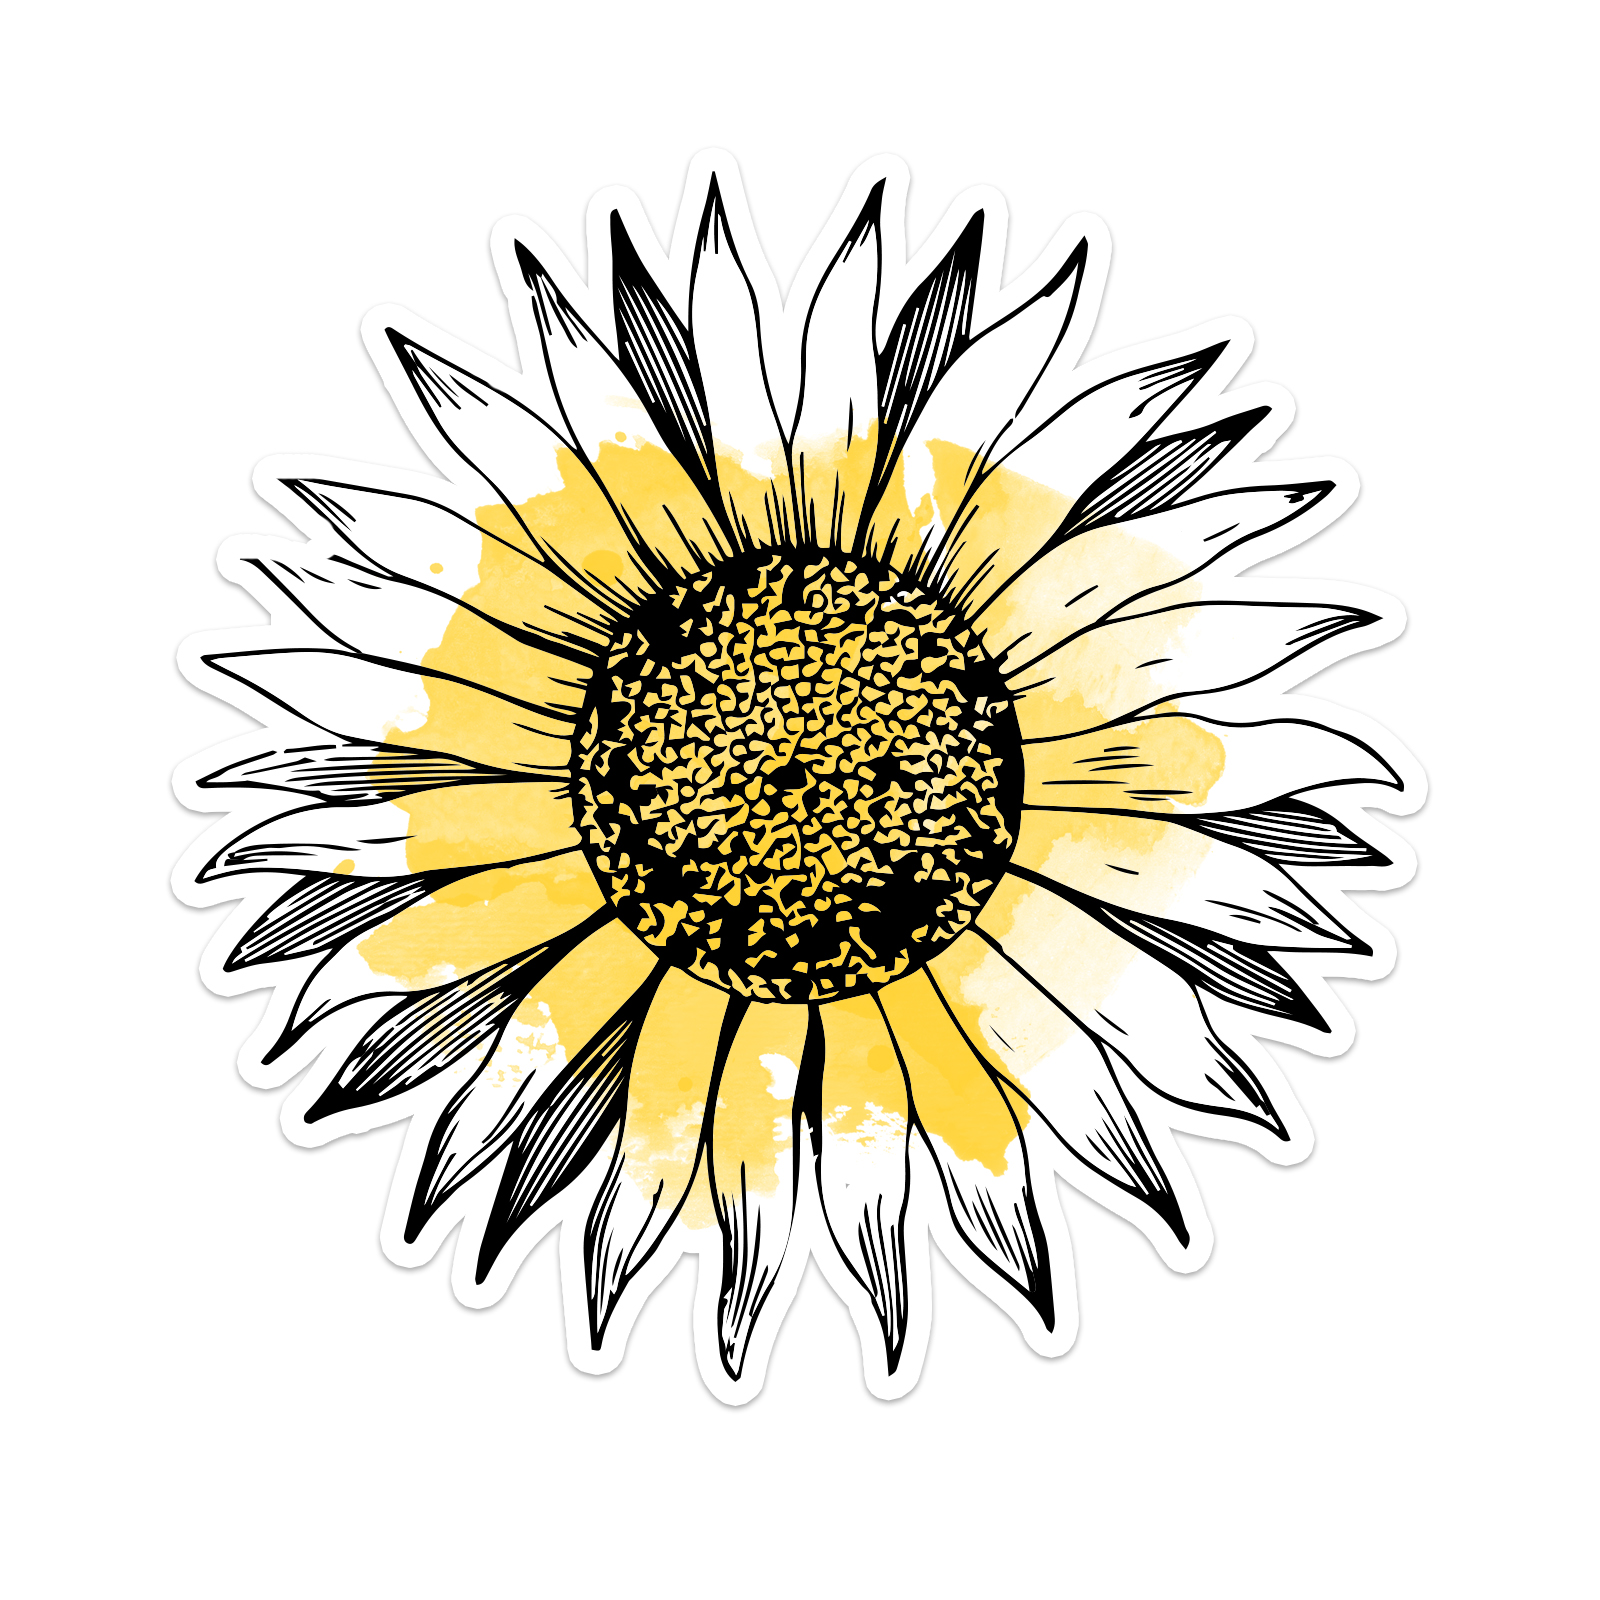 Watercolor Sunflower Laptop Trackpad Sticker 3 Quot Tall X 3 Quot Wide